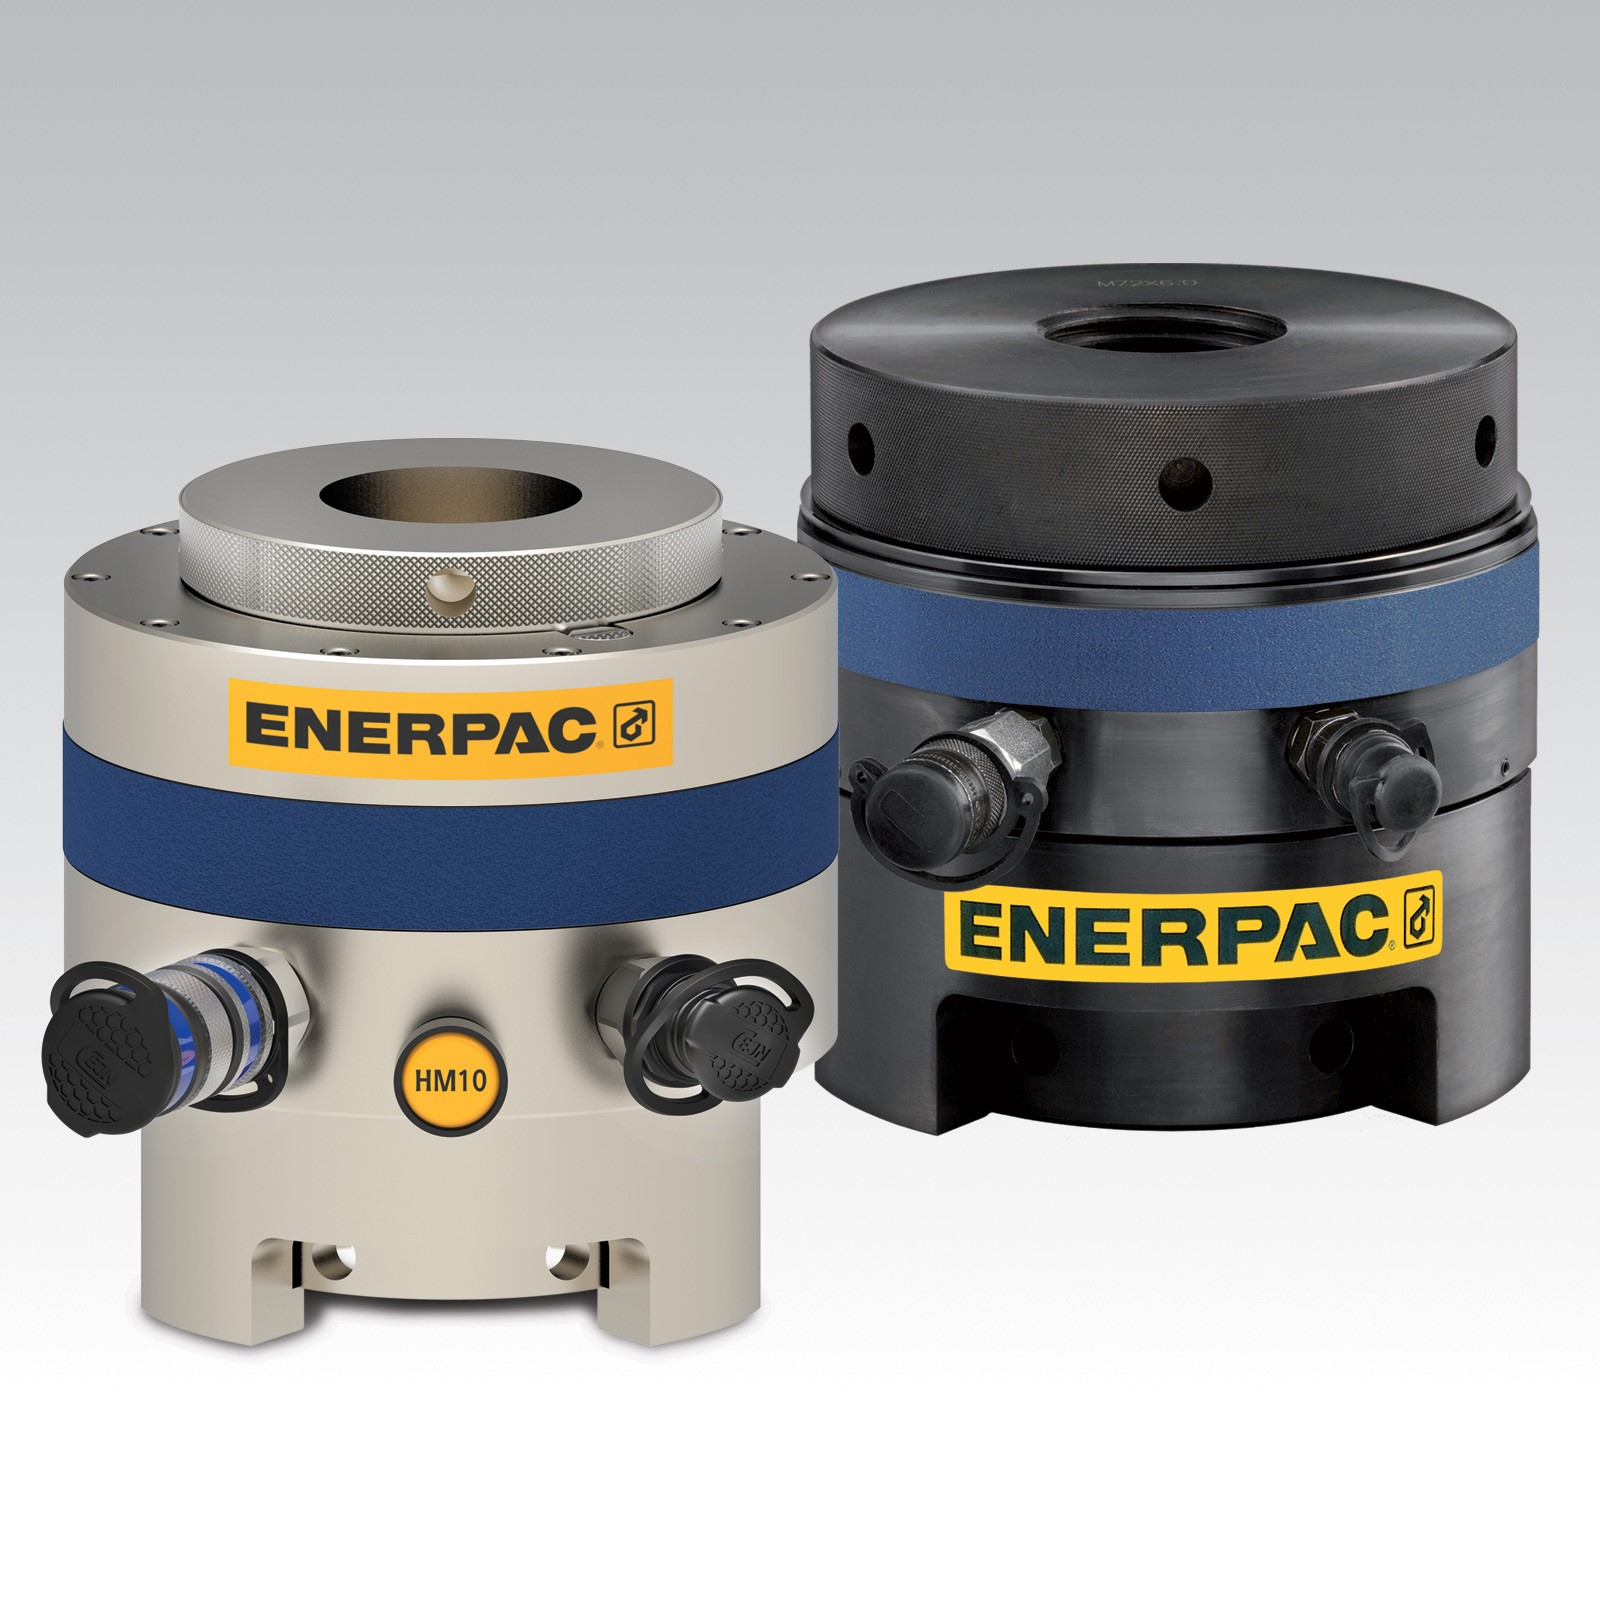 Enerpac announces HM-Series HydraMax and updated GT-Series Hydraulic Topside Tensioners for bolt tightening